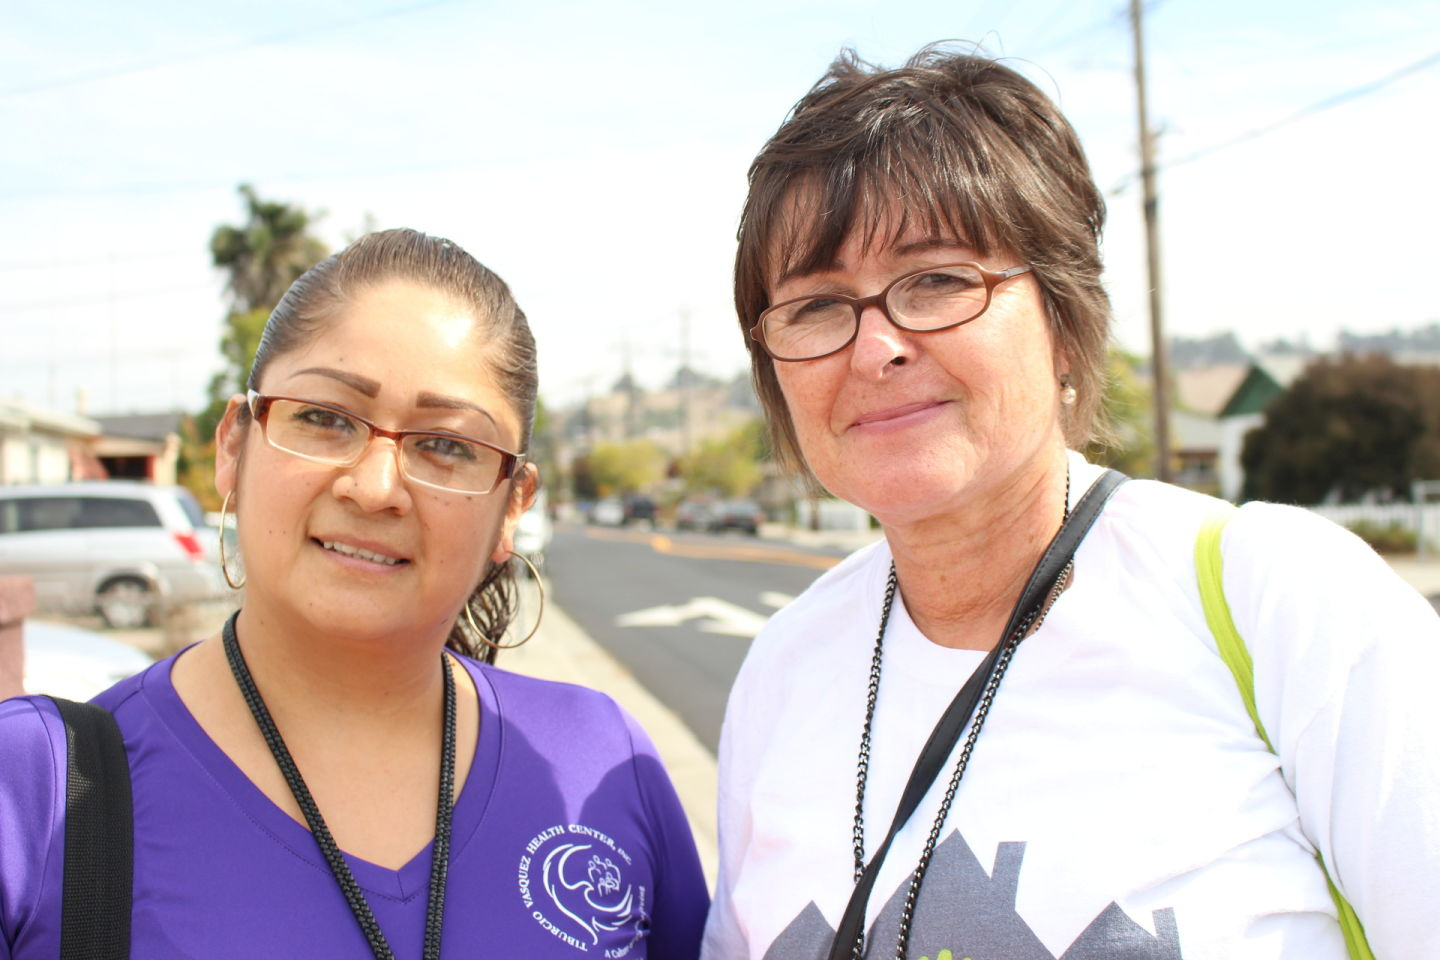 Hayward 'Promotoras' Make House Calls, Connect Neighbors to Health Care